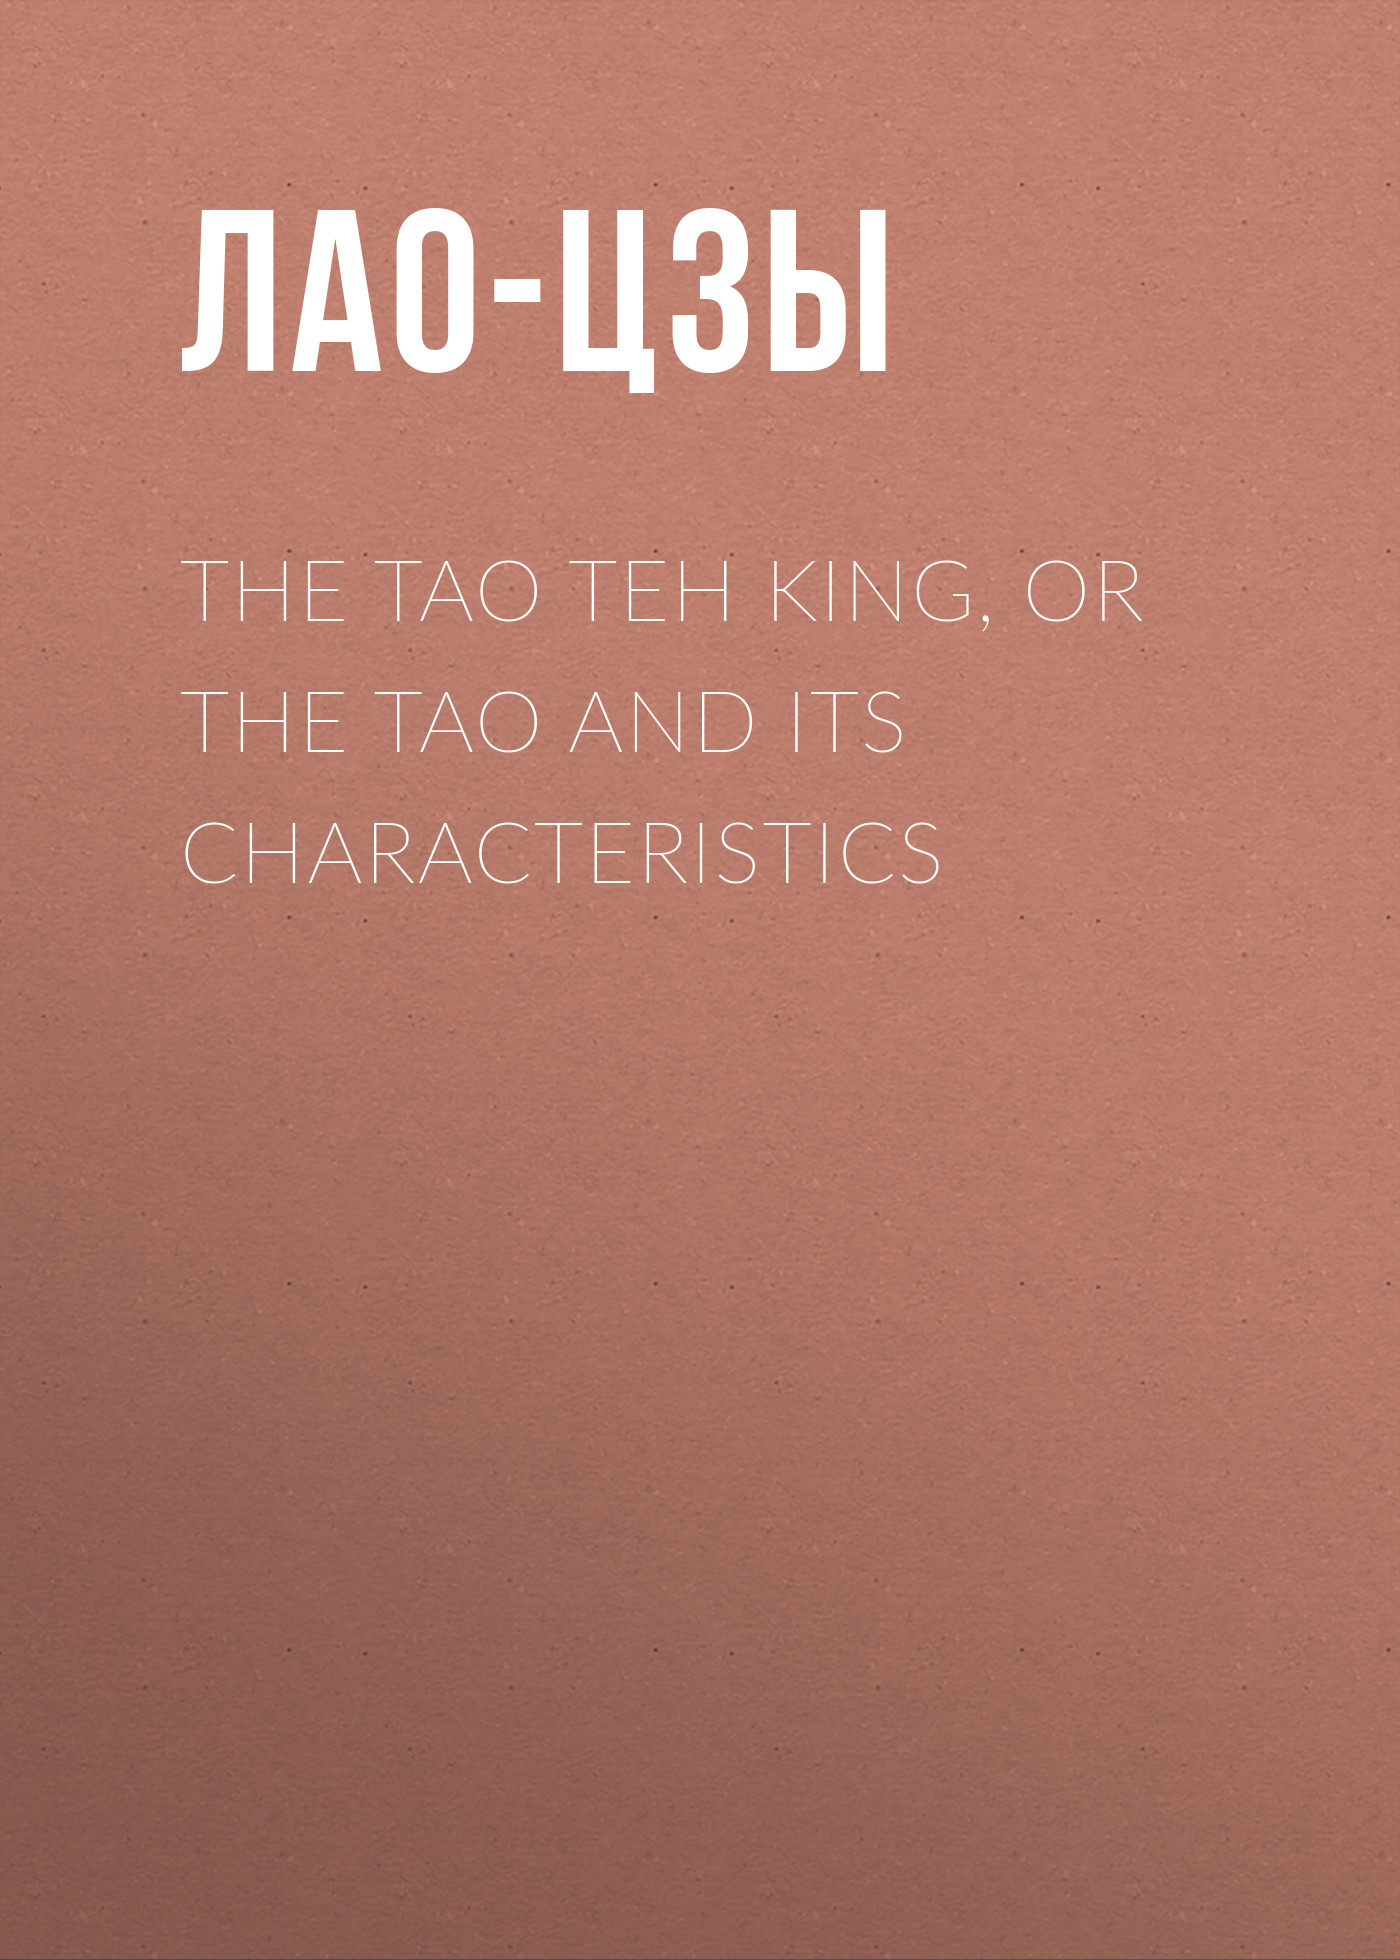 Лао-цзы The Tao Teh King, or the Tao and its Characteristics глиняный сюнь zhi xuan tao xun